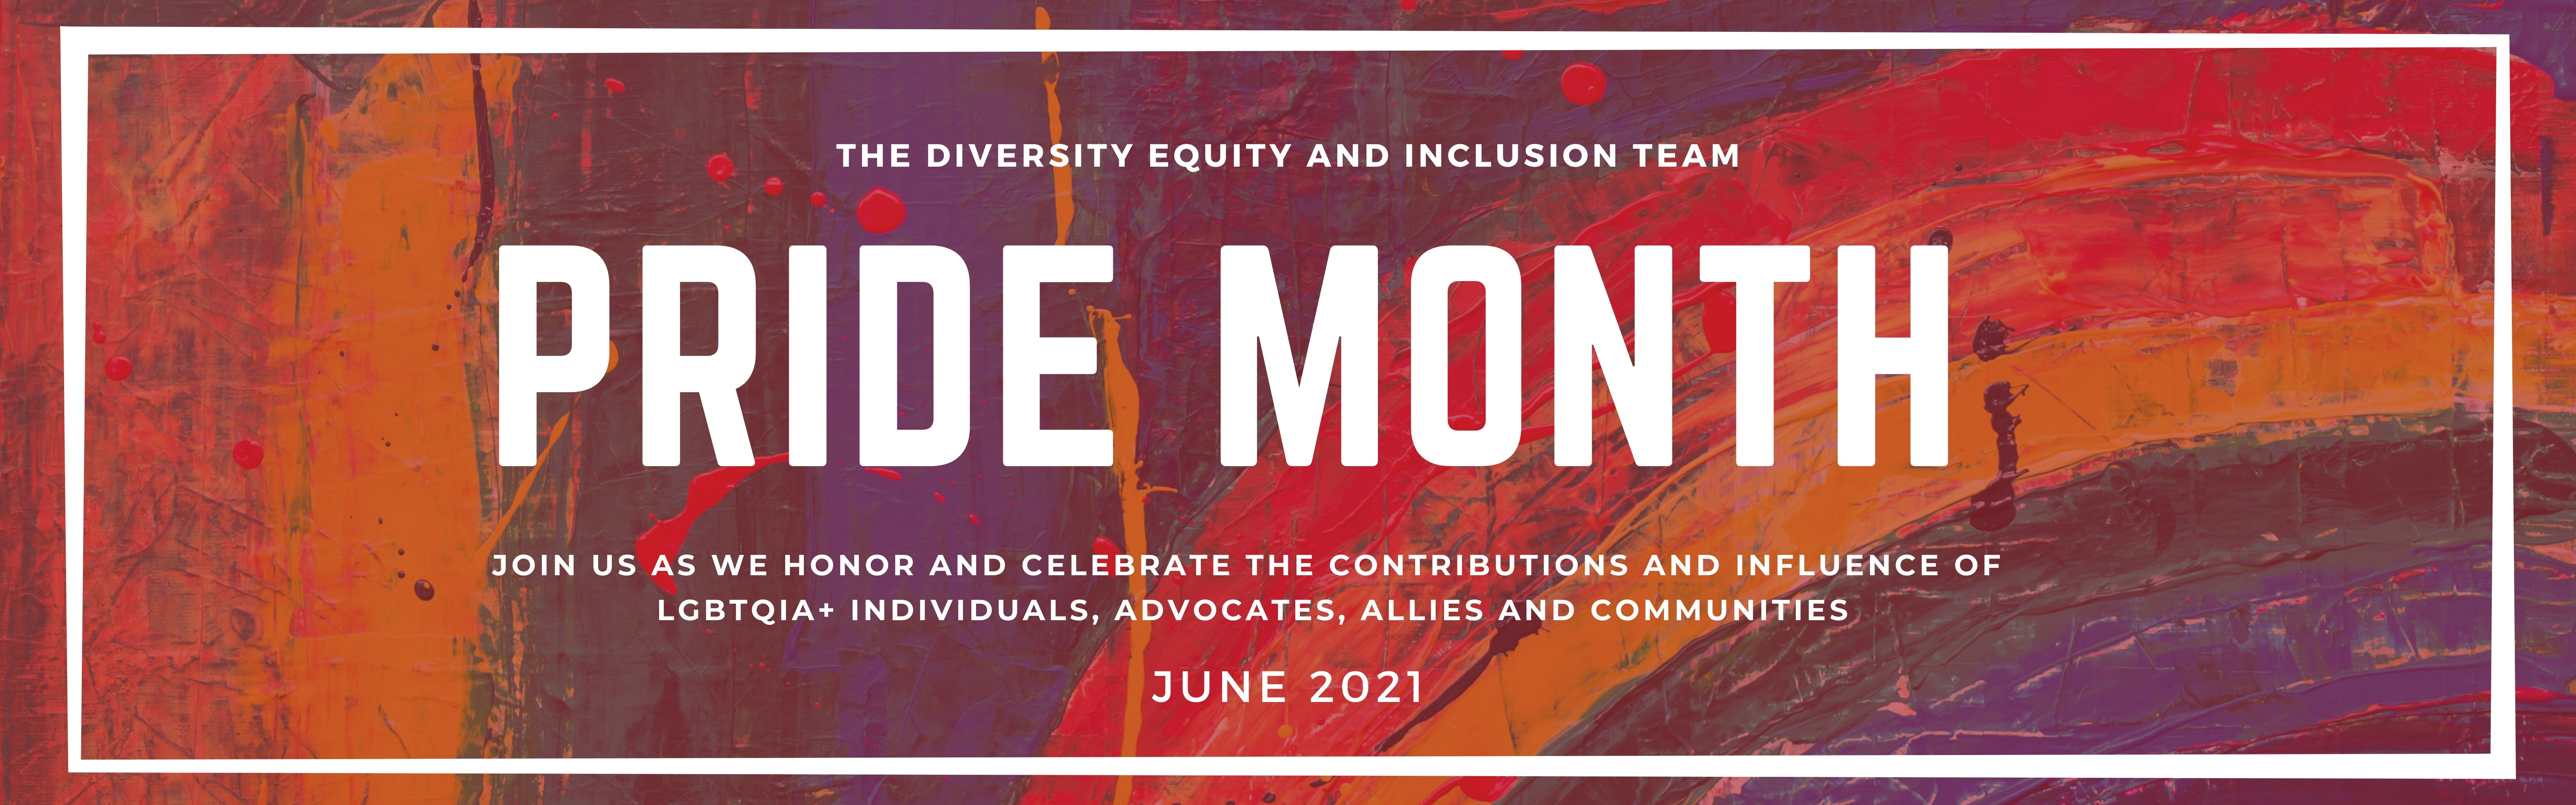 WPI Diversity, Equity & Inclusion Team Honors and Celebrates the Contributions and and Influence of LGBTQI+ Individuals, Advocates, Allies and Communities